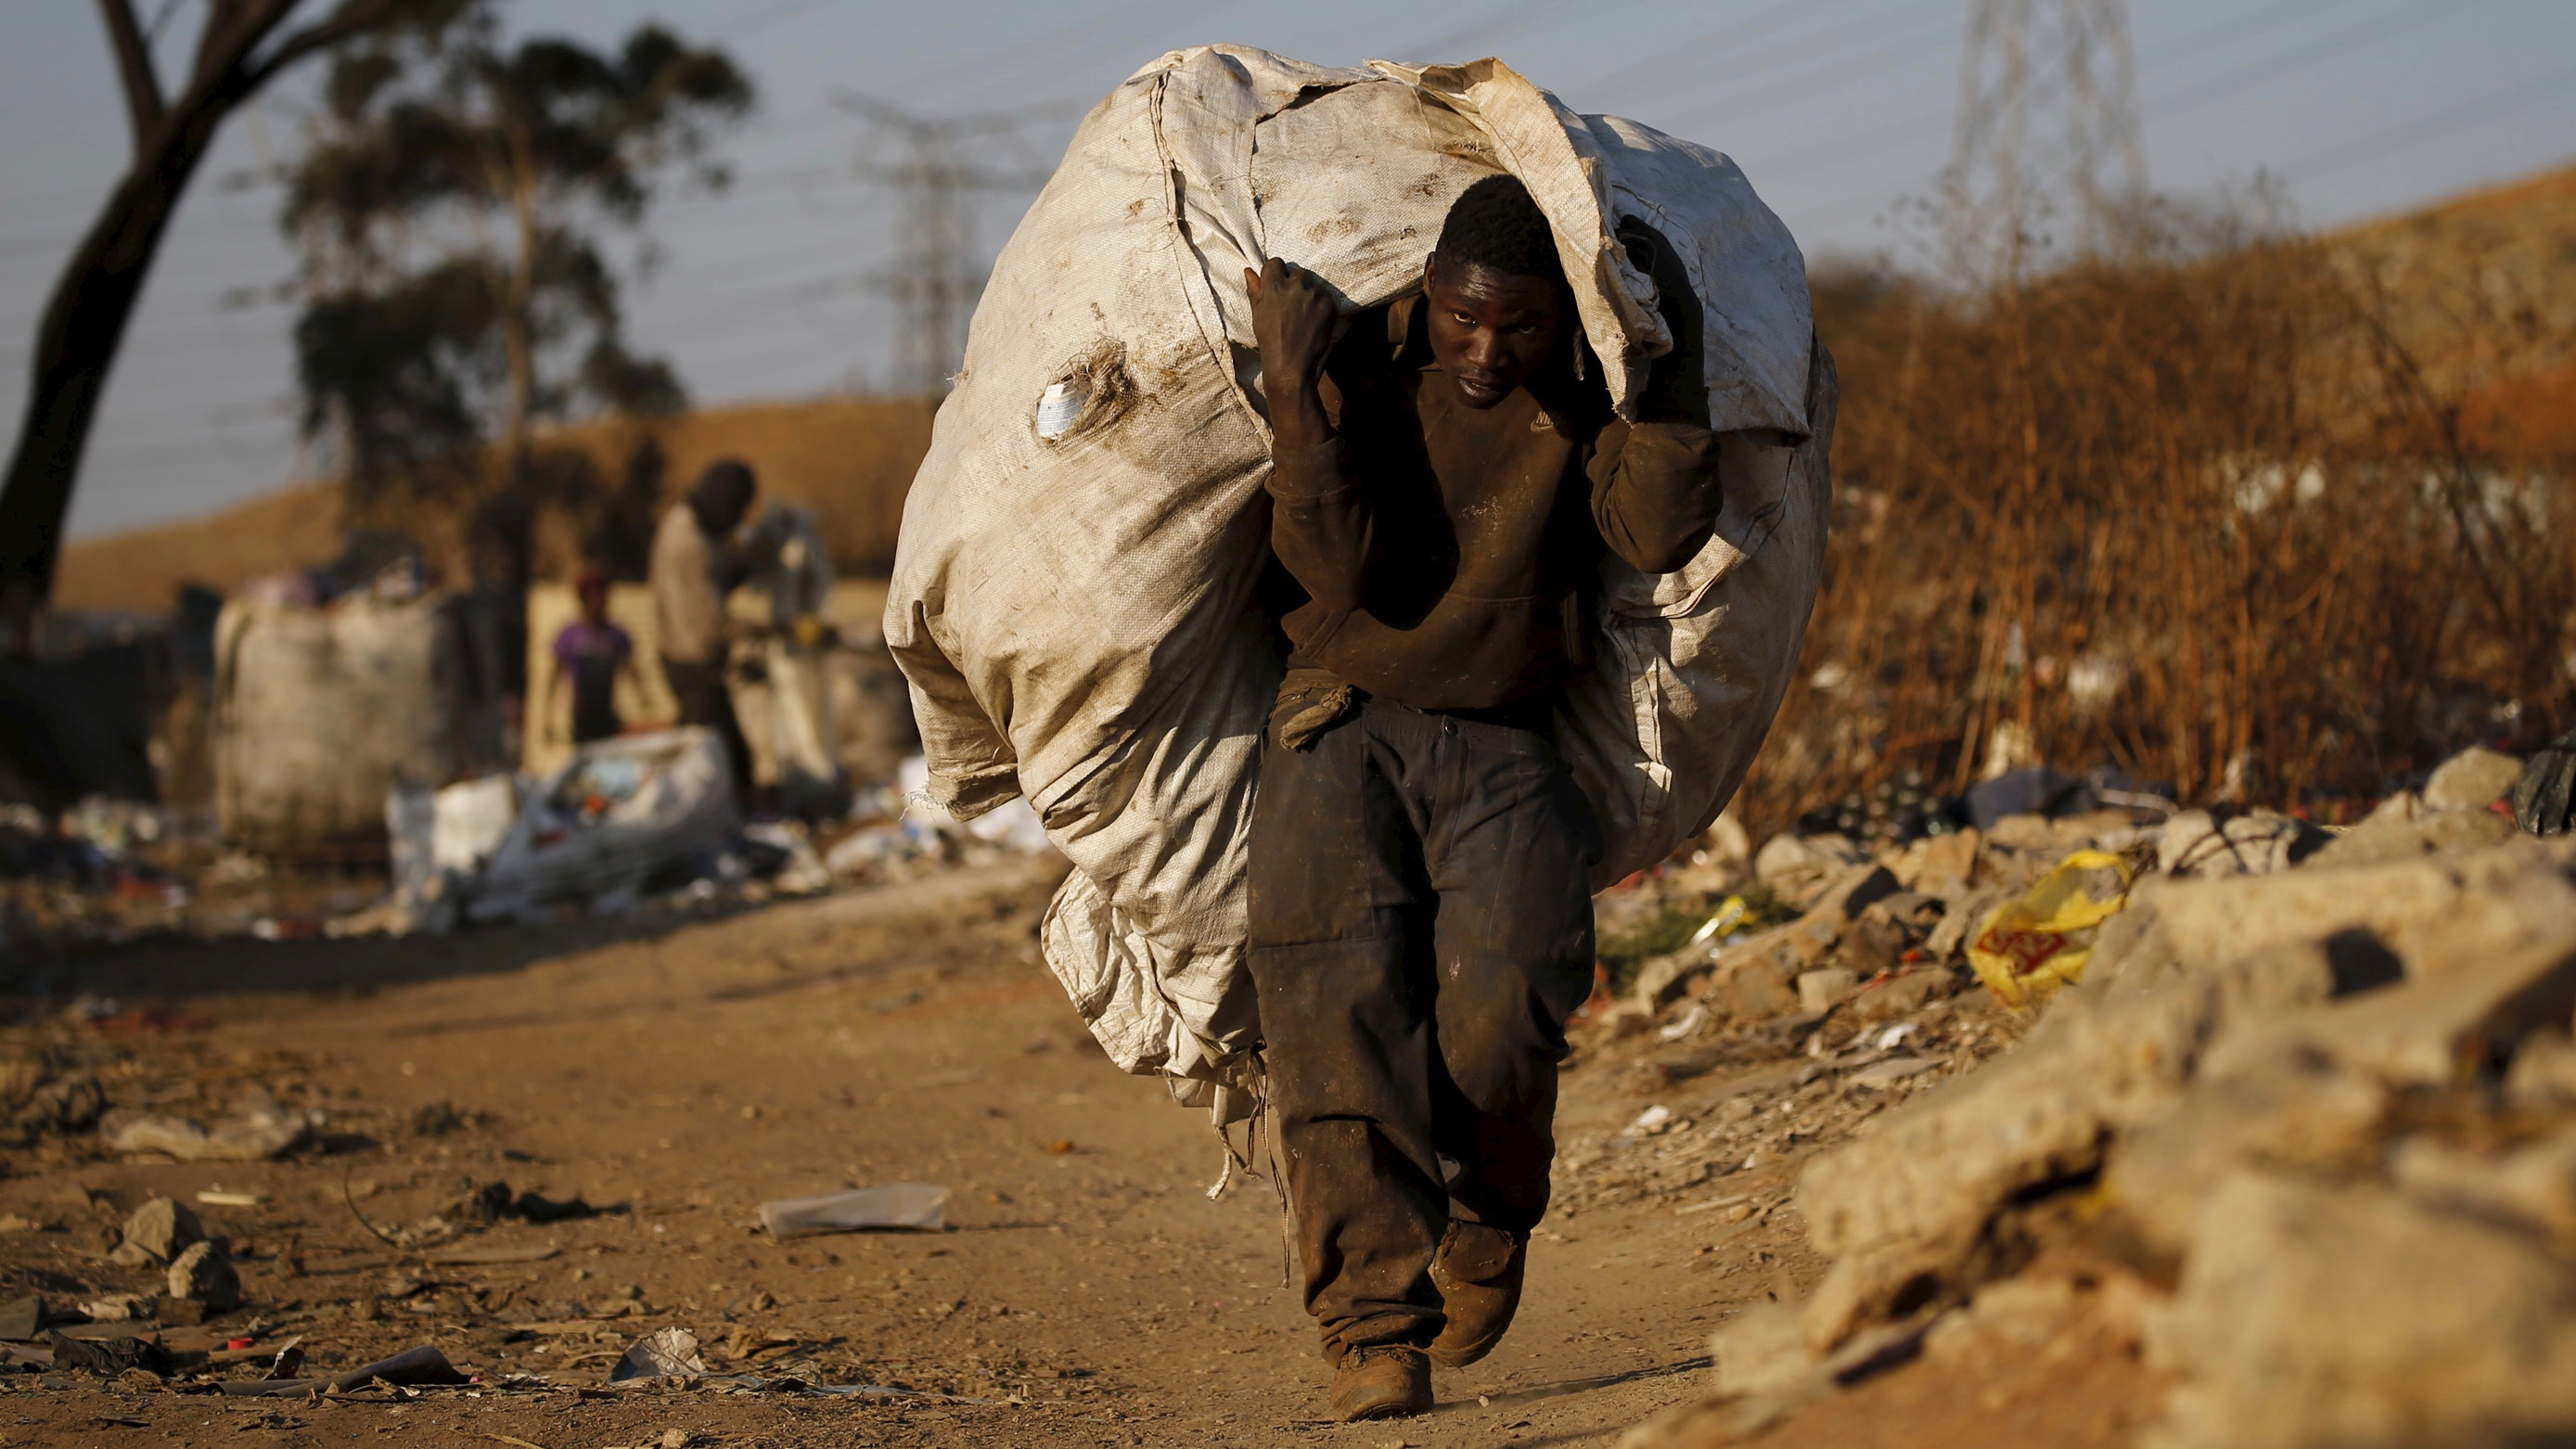 An unemployed man carries a bag full of recyclable waste material which he sells for a living, in Daveland near Soweto, South Africa August 4, 2015. REUTERS/Siphiwe Sibeko  - RTX1N1MB